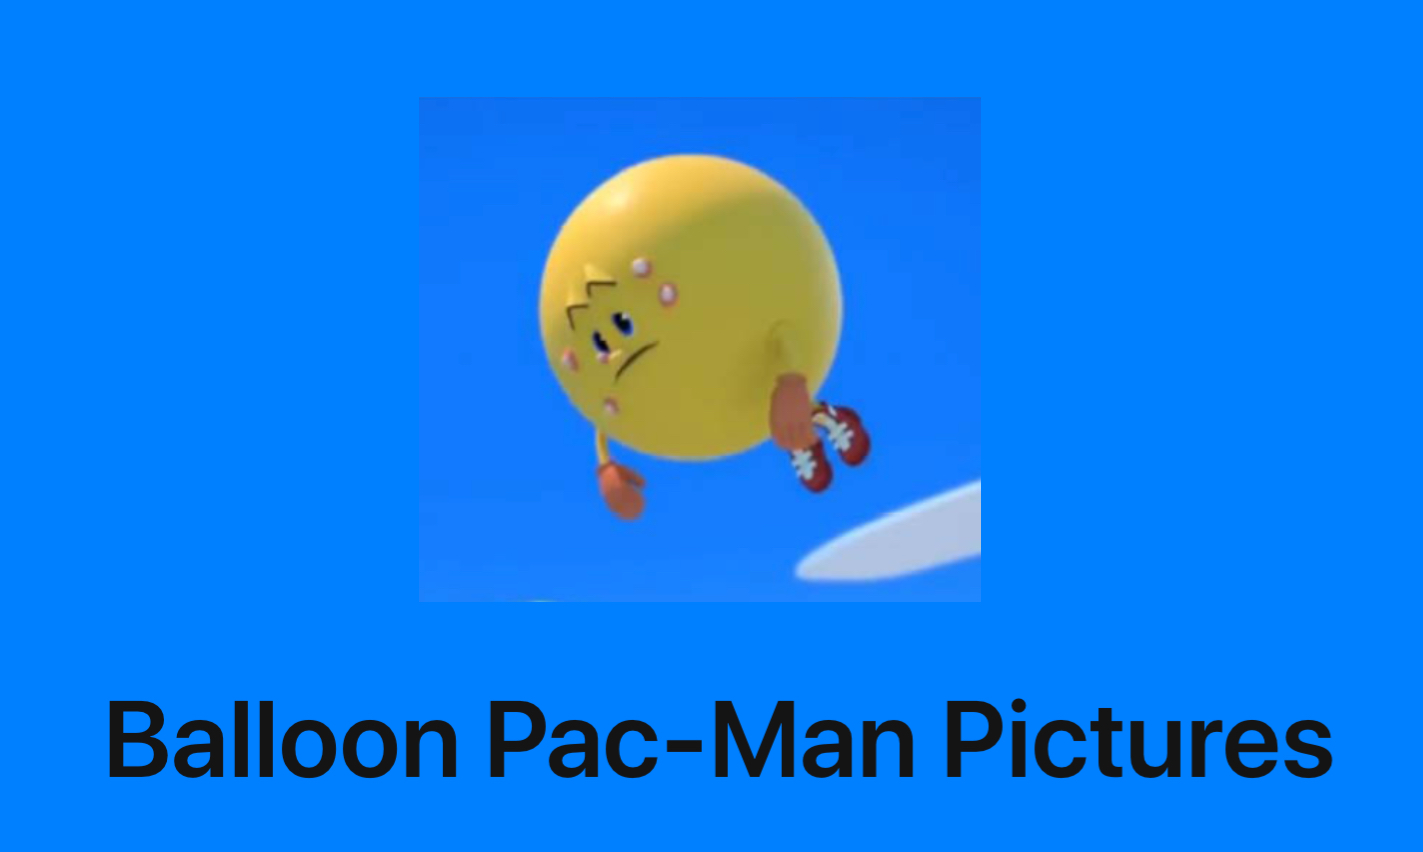 Balloon Pac-Man Pictures